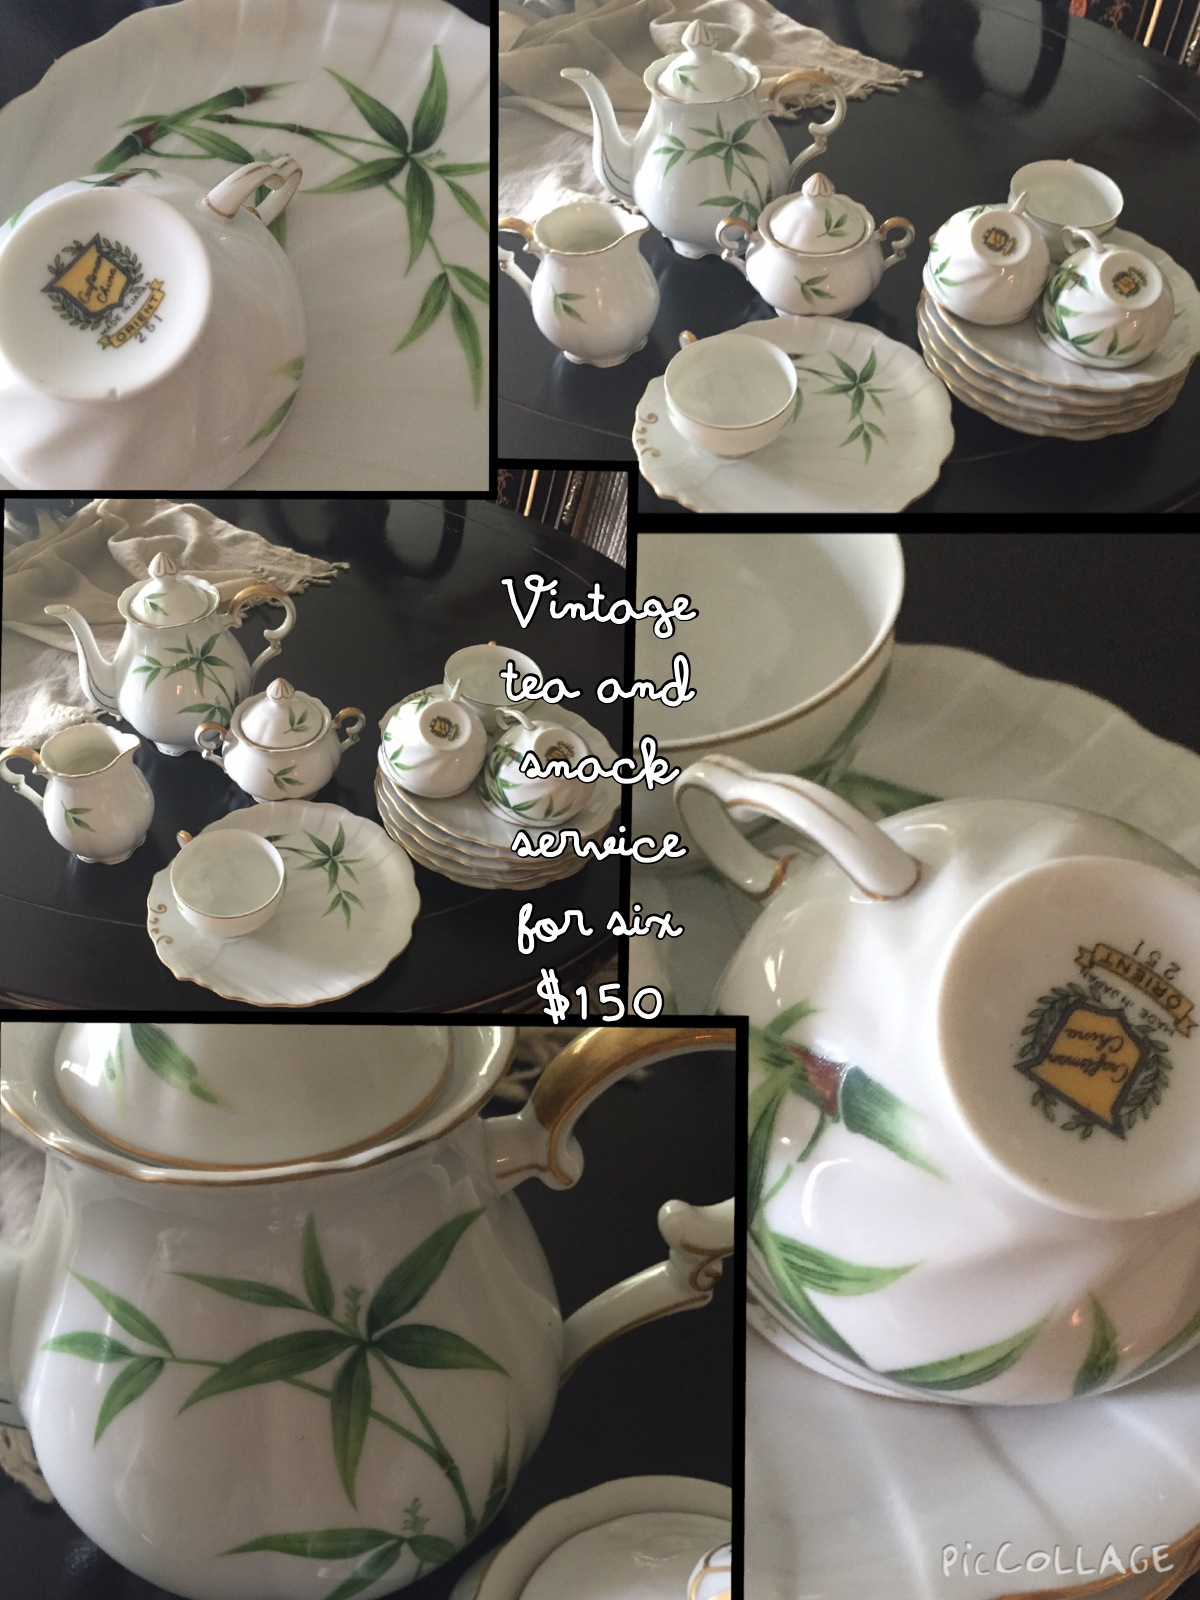 Vintage Tea and Snack Service for 6